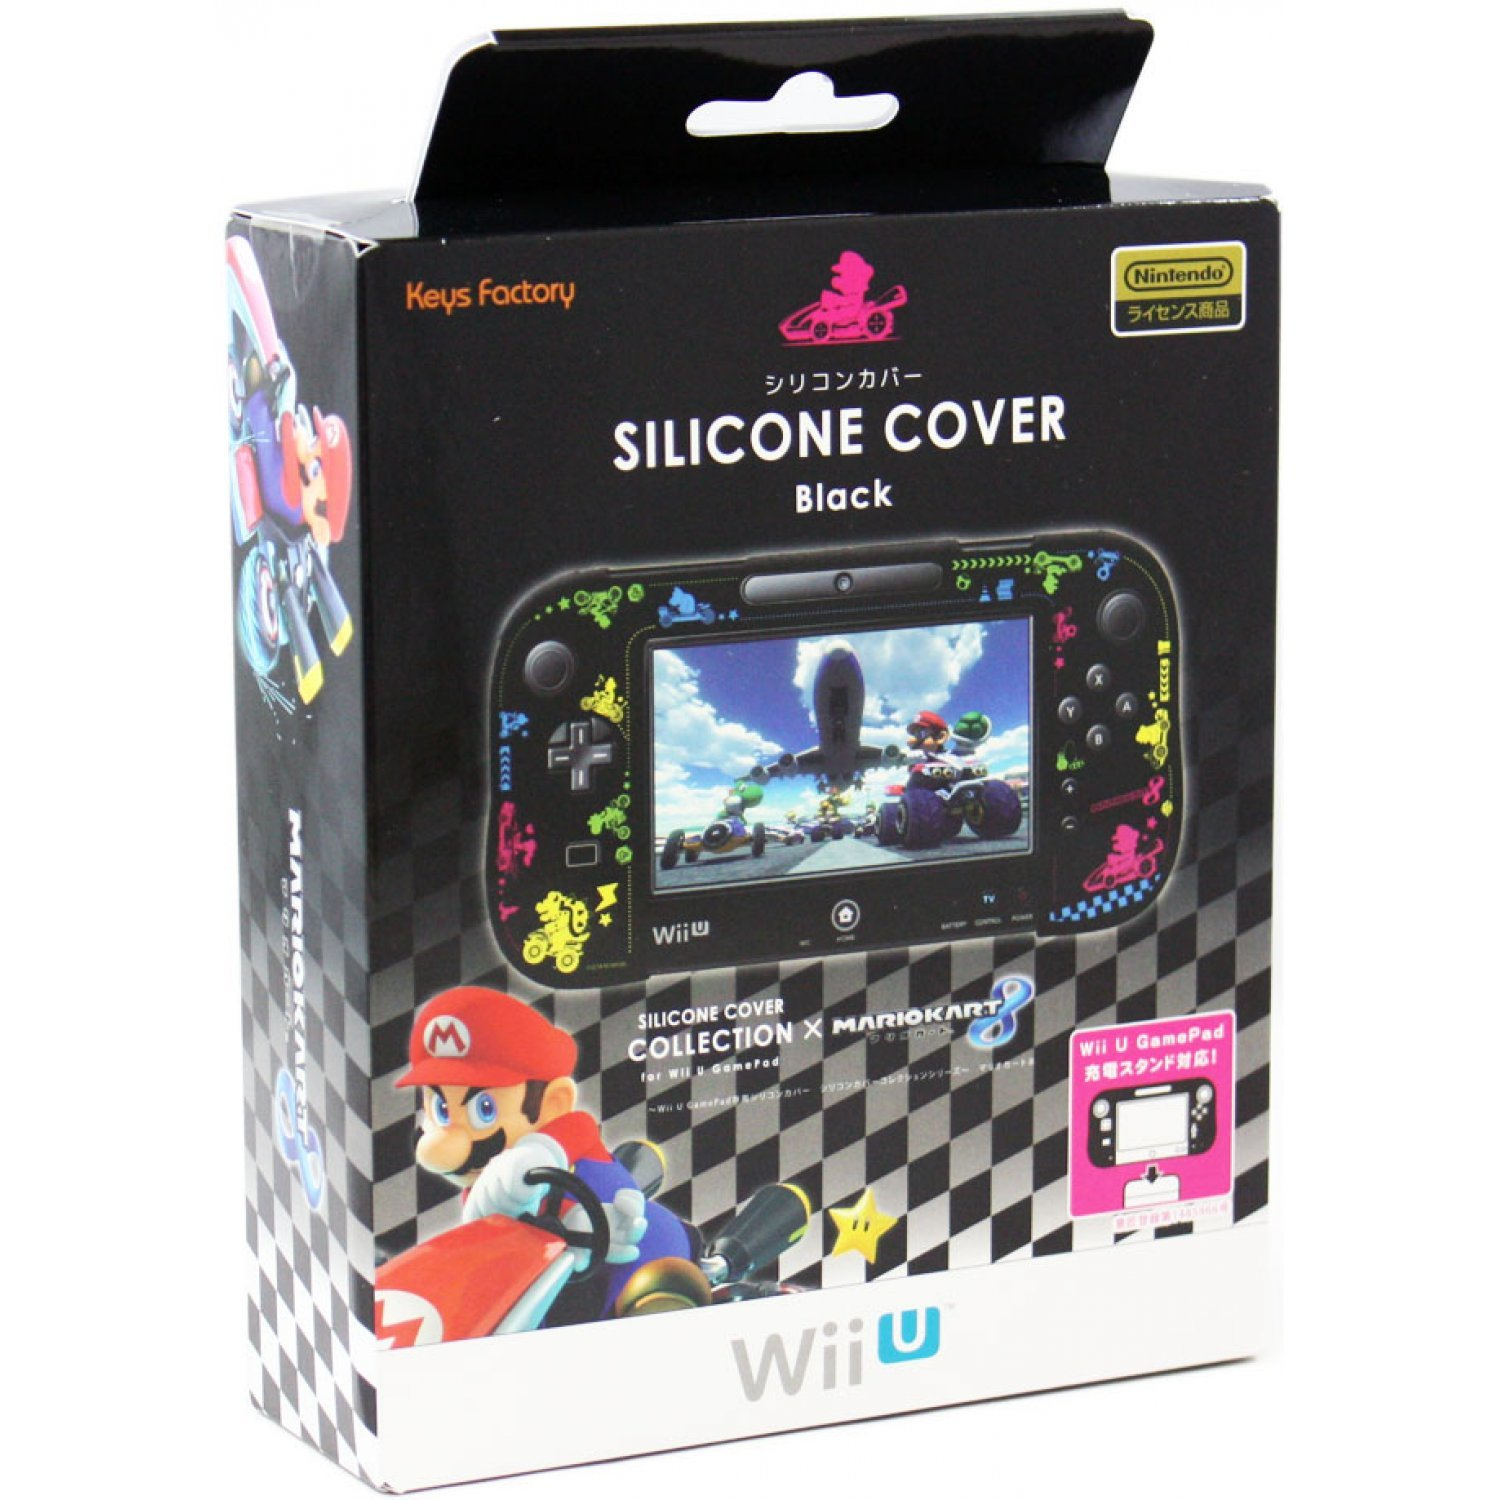 silicon cover for wii u gamepad mario kart 8 type b. Black Bedroom Furniture Sets. Home Design Ideas